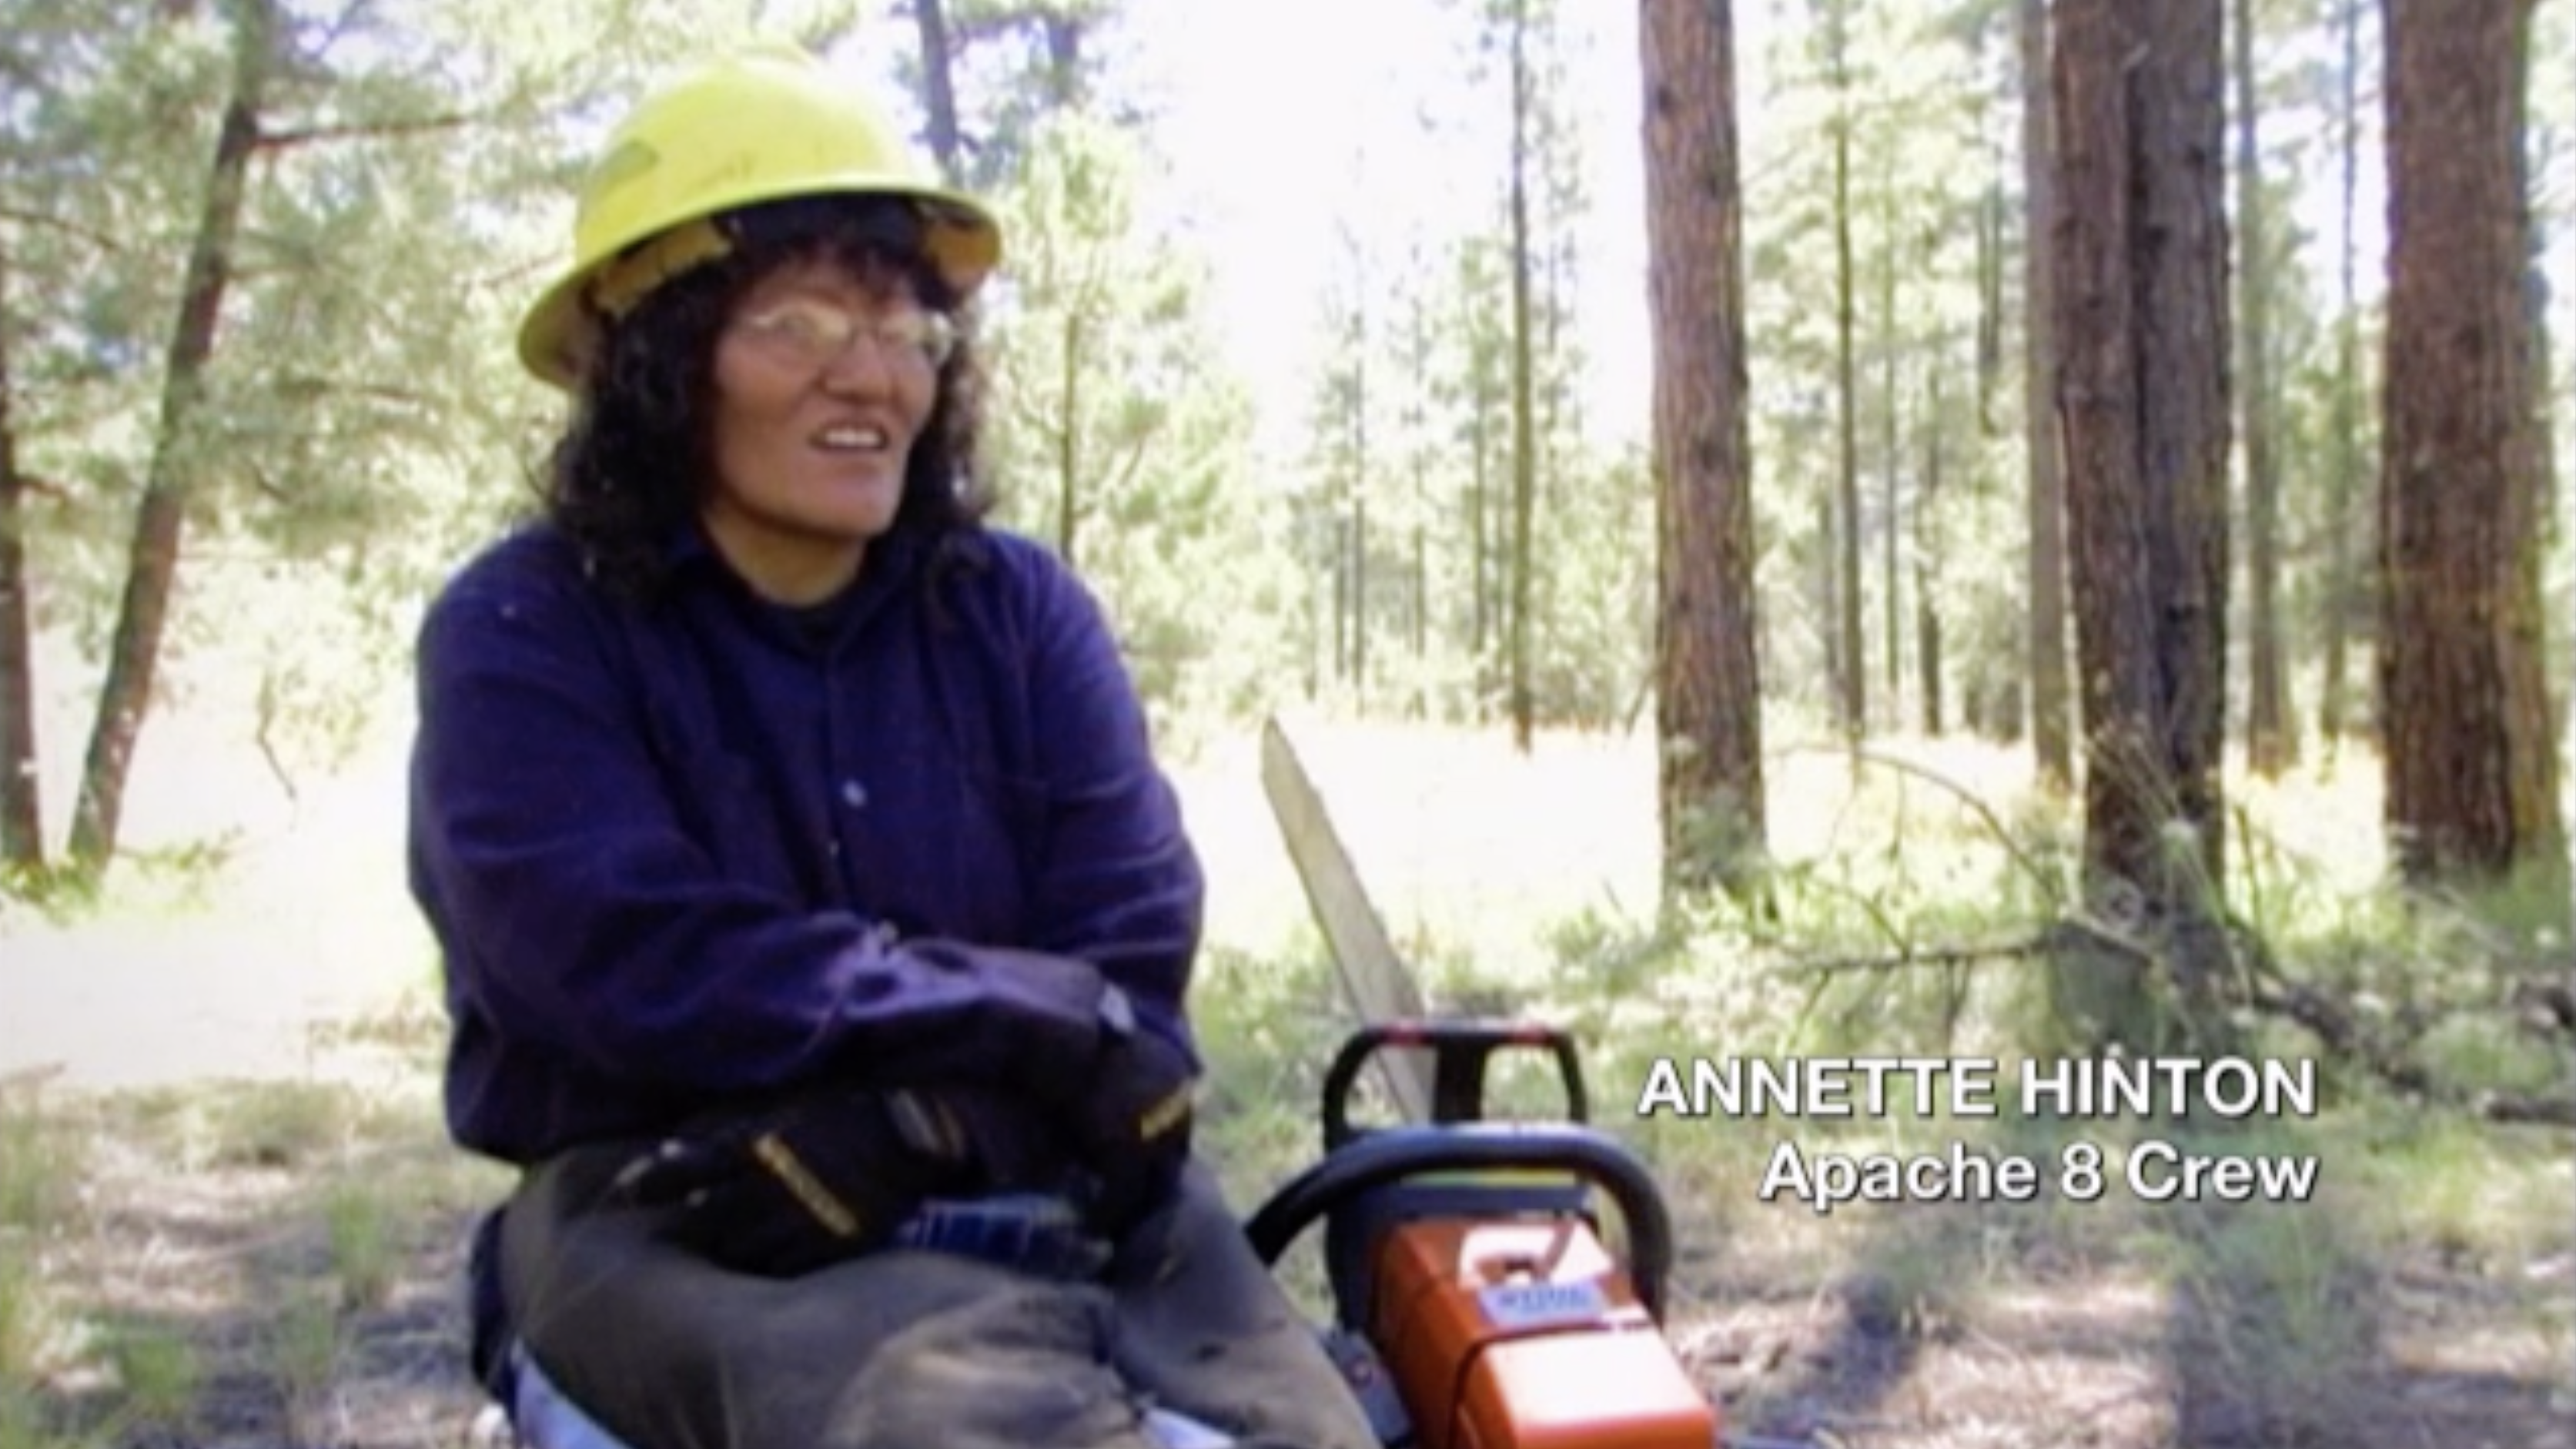 Annette Hinton, Apache 8 Crew, from Apache 8, https://americanarchive.org/catalog/cpb-aacip-508-125q815826.